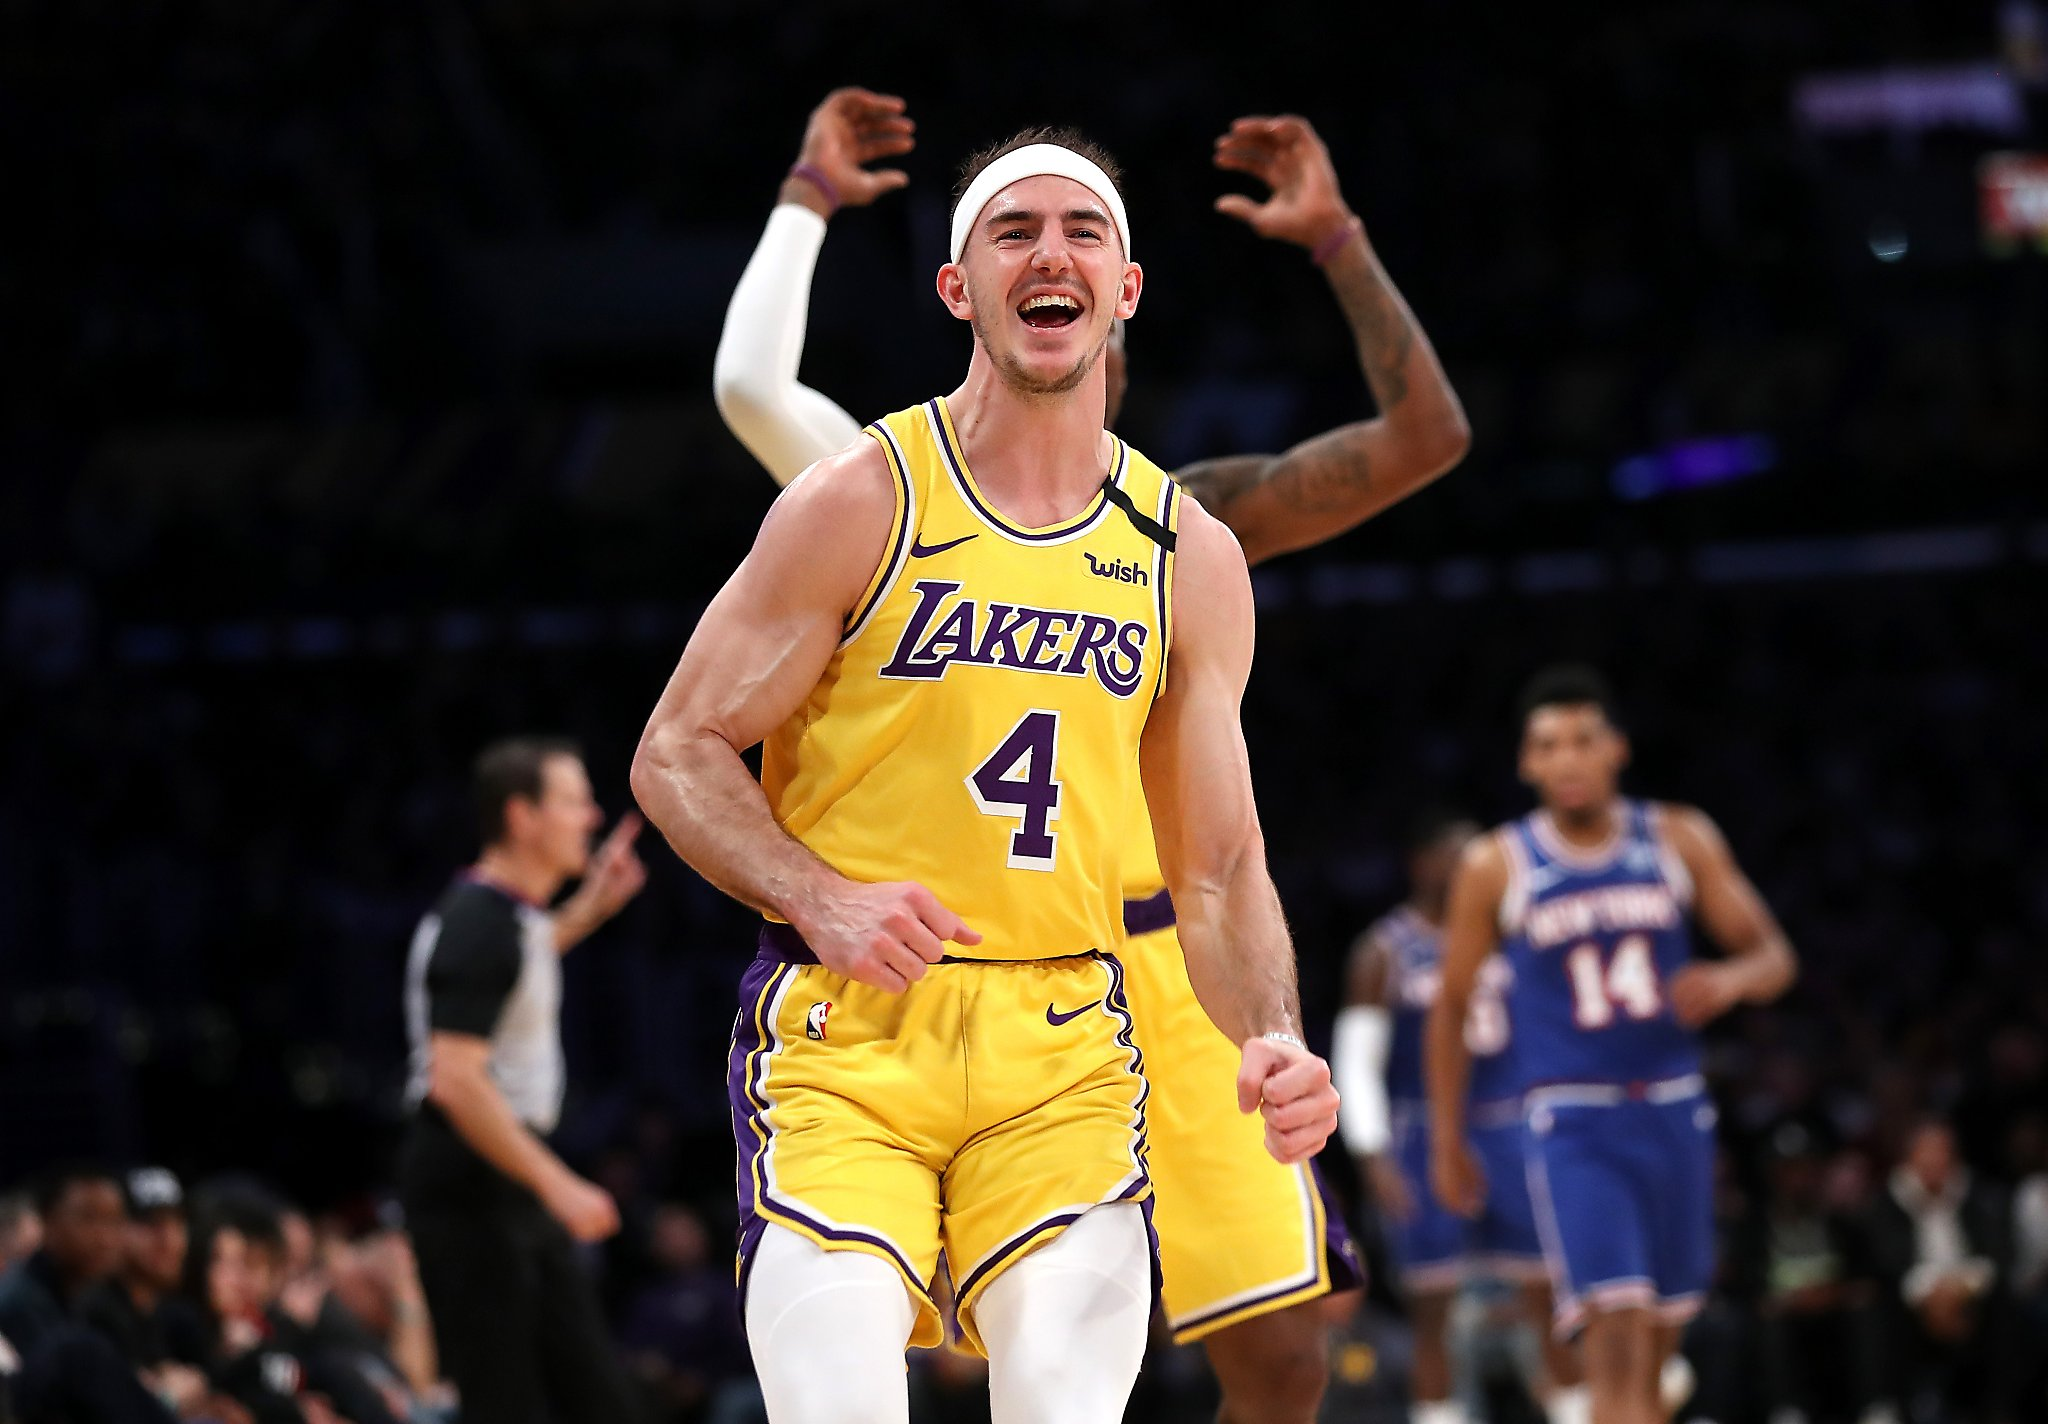 Lakers' Alex Caruso skips sister's Texas wedding to stay in NBA bubble